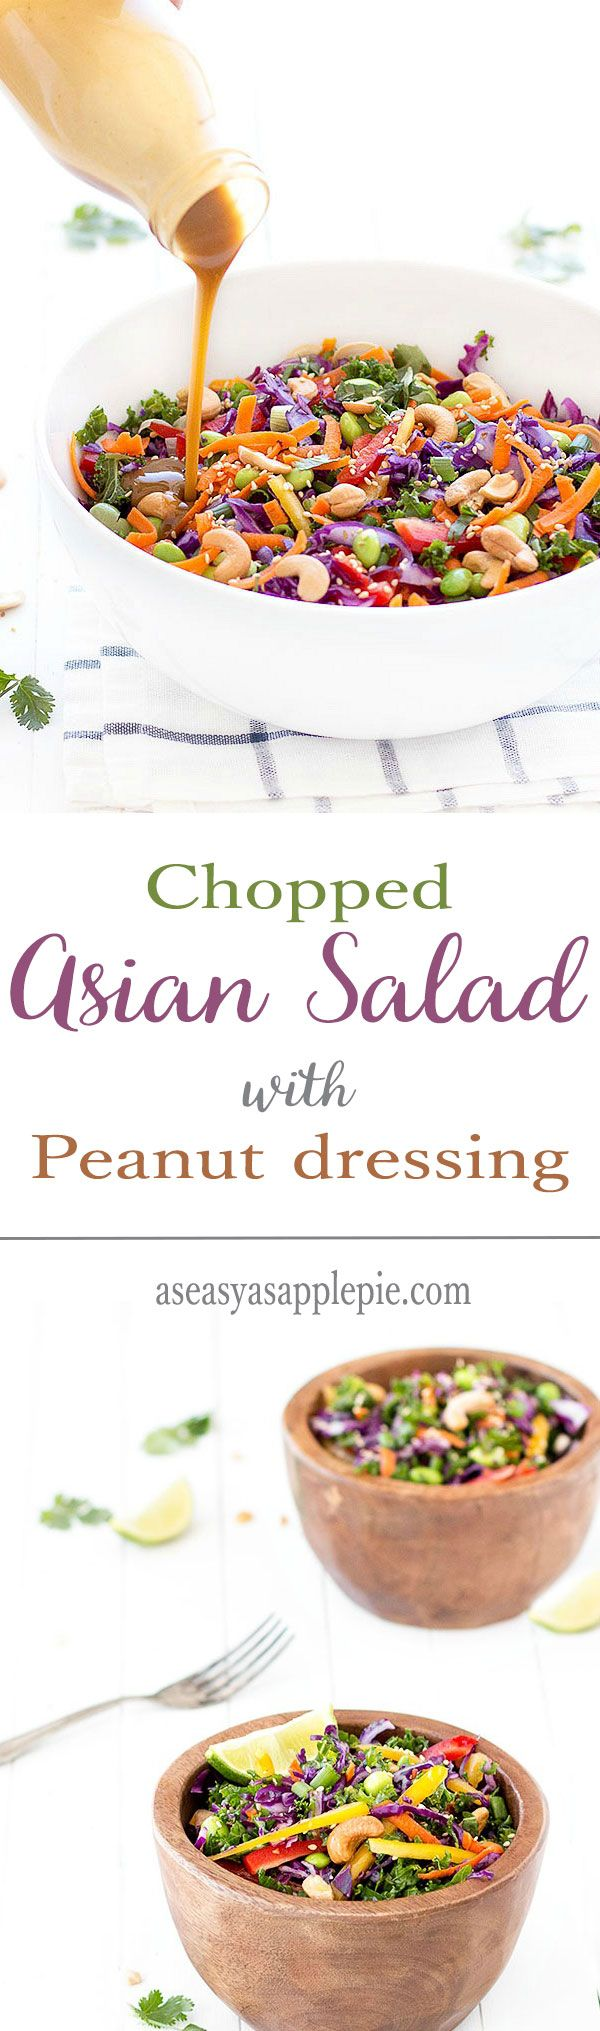 Chopped asian salad with a creamy peanut dressing: full of flavor, texture, color and nutrition! t's a light and healthy salad perfect for lunch or dinner.